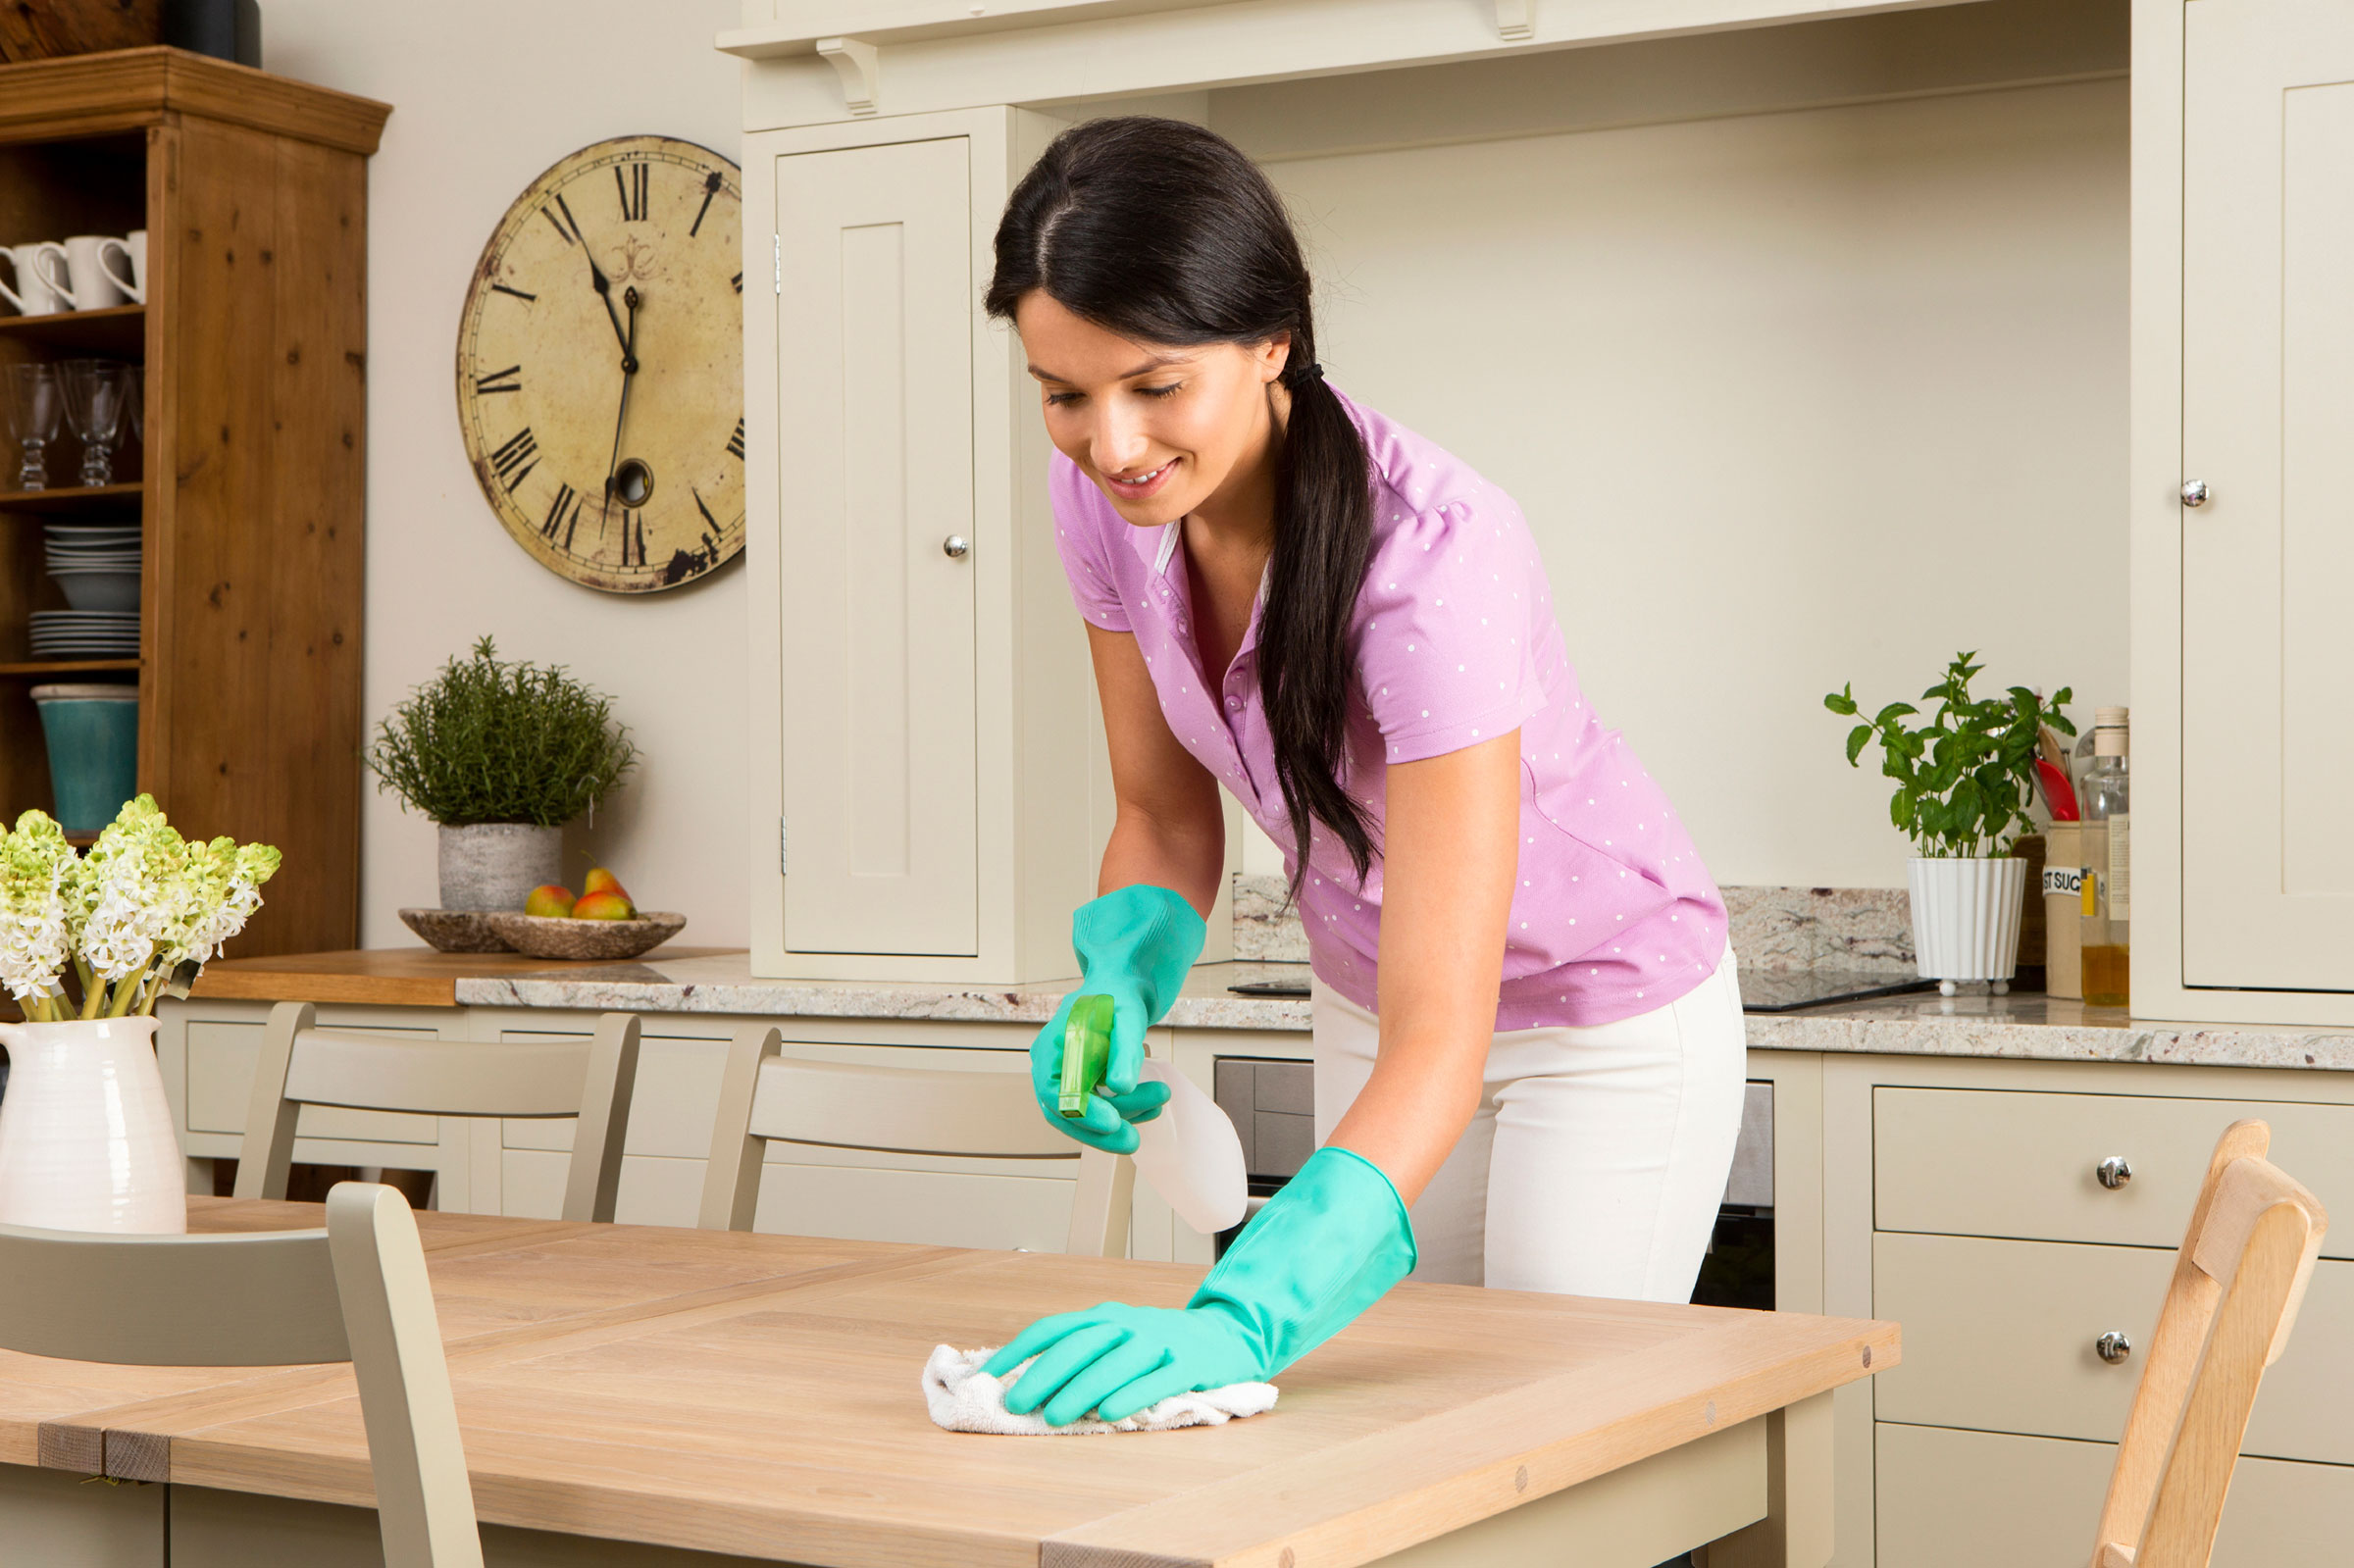 Old Fashioned Homemaking - Living Old Fashioned In Old fashioned house cleaning